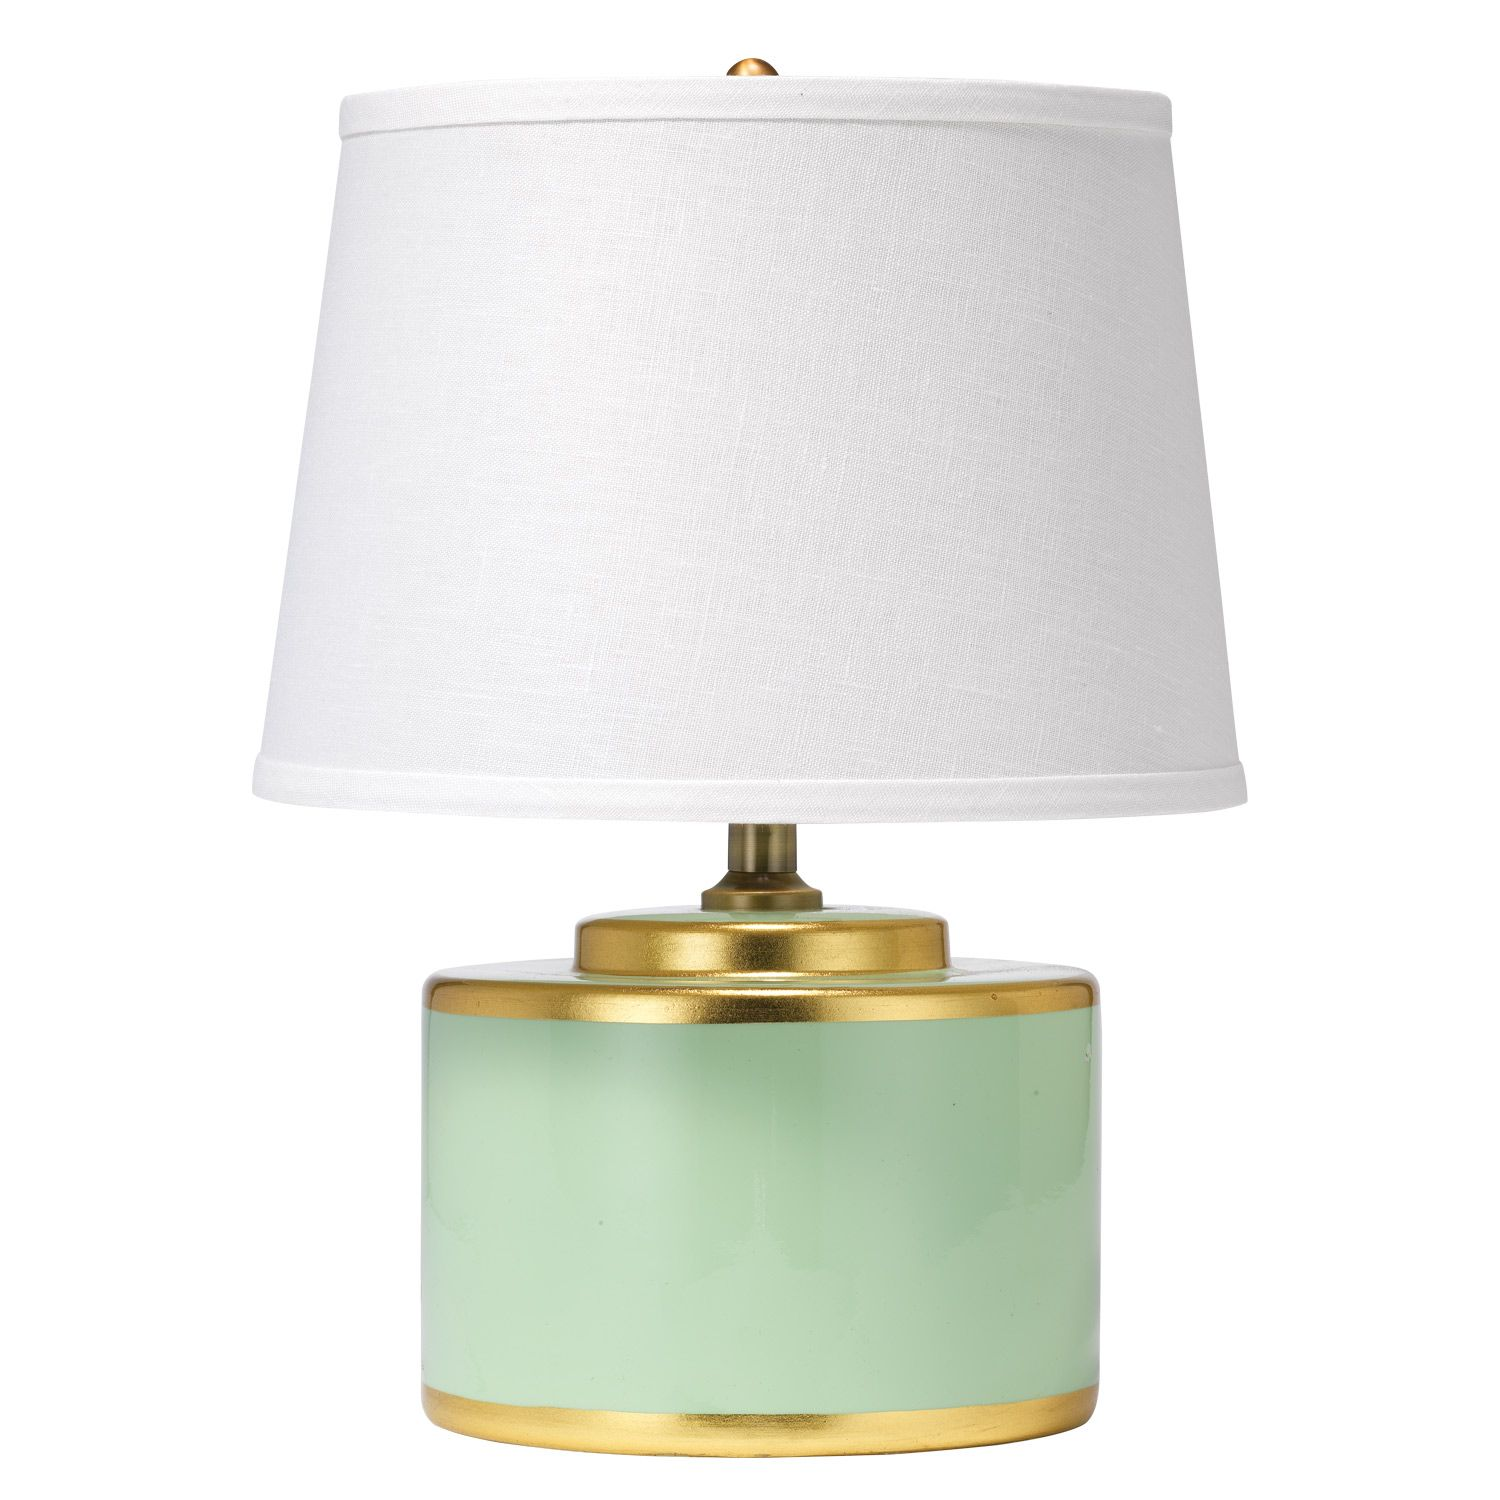 Jamie Young S Basin Lamp Lends Luminous Lighting To Bedsides And Tabletops Encircled With Gold For A Metallic Touch This Drum Shaped Fi Teal Table Lamps Table Lamp Ceramic Table Lamps